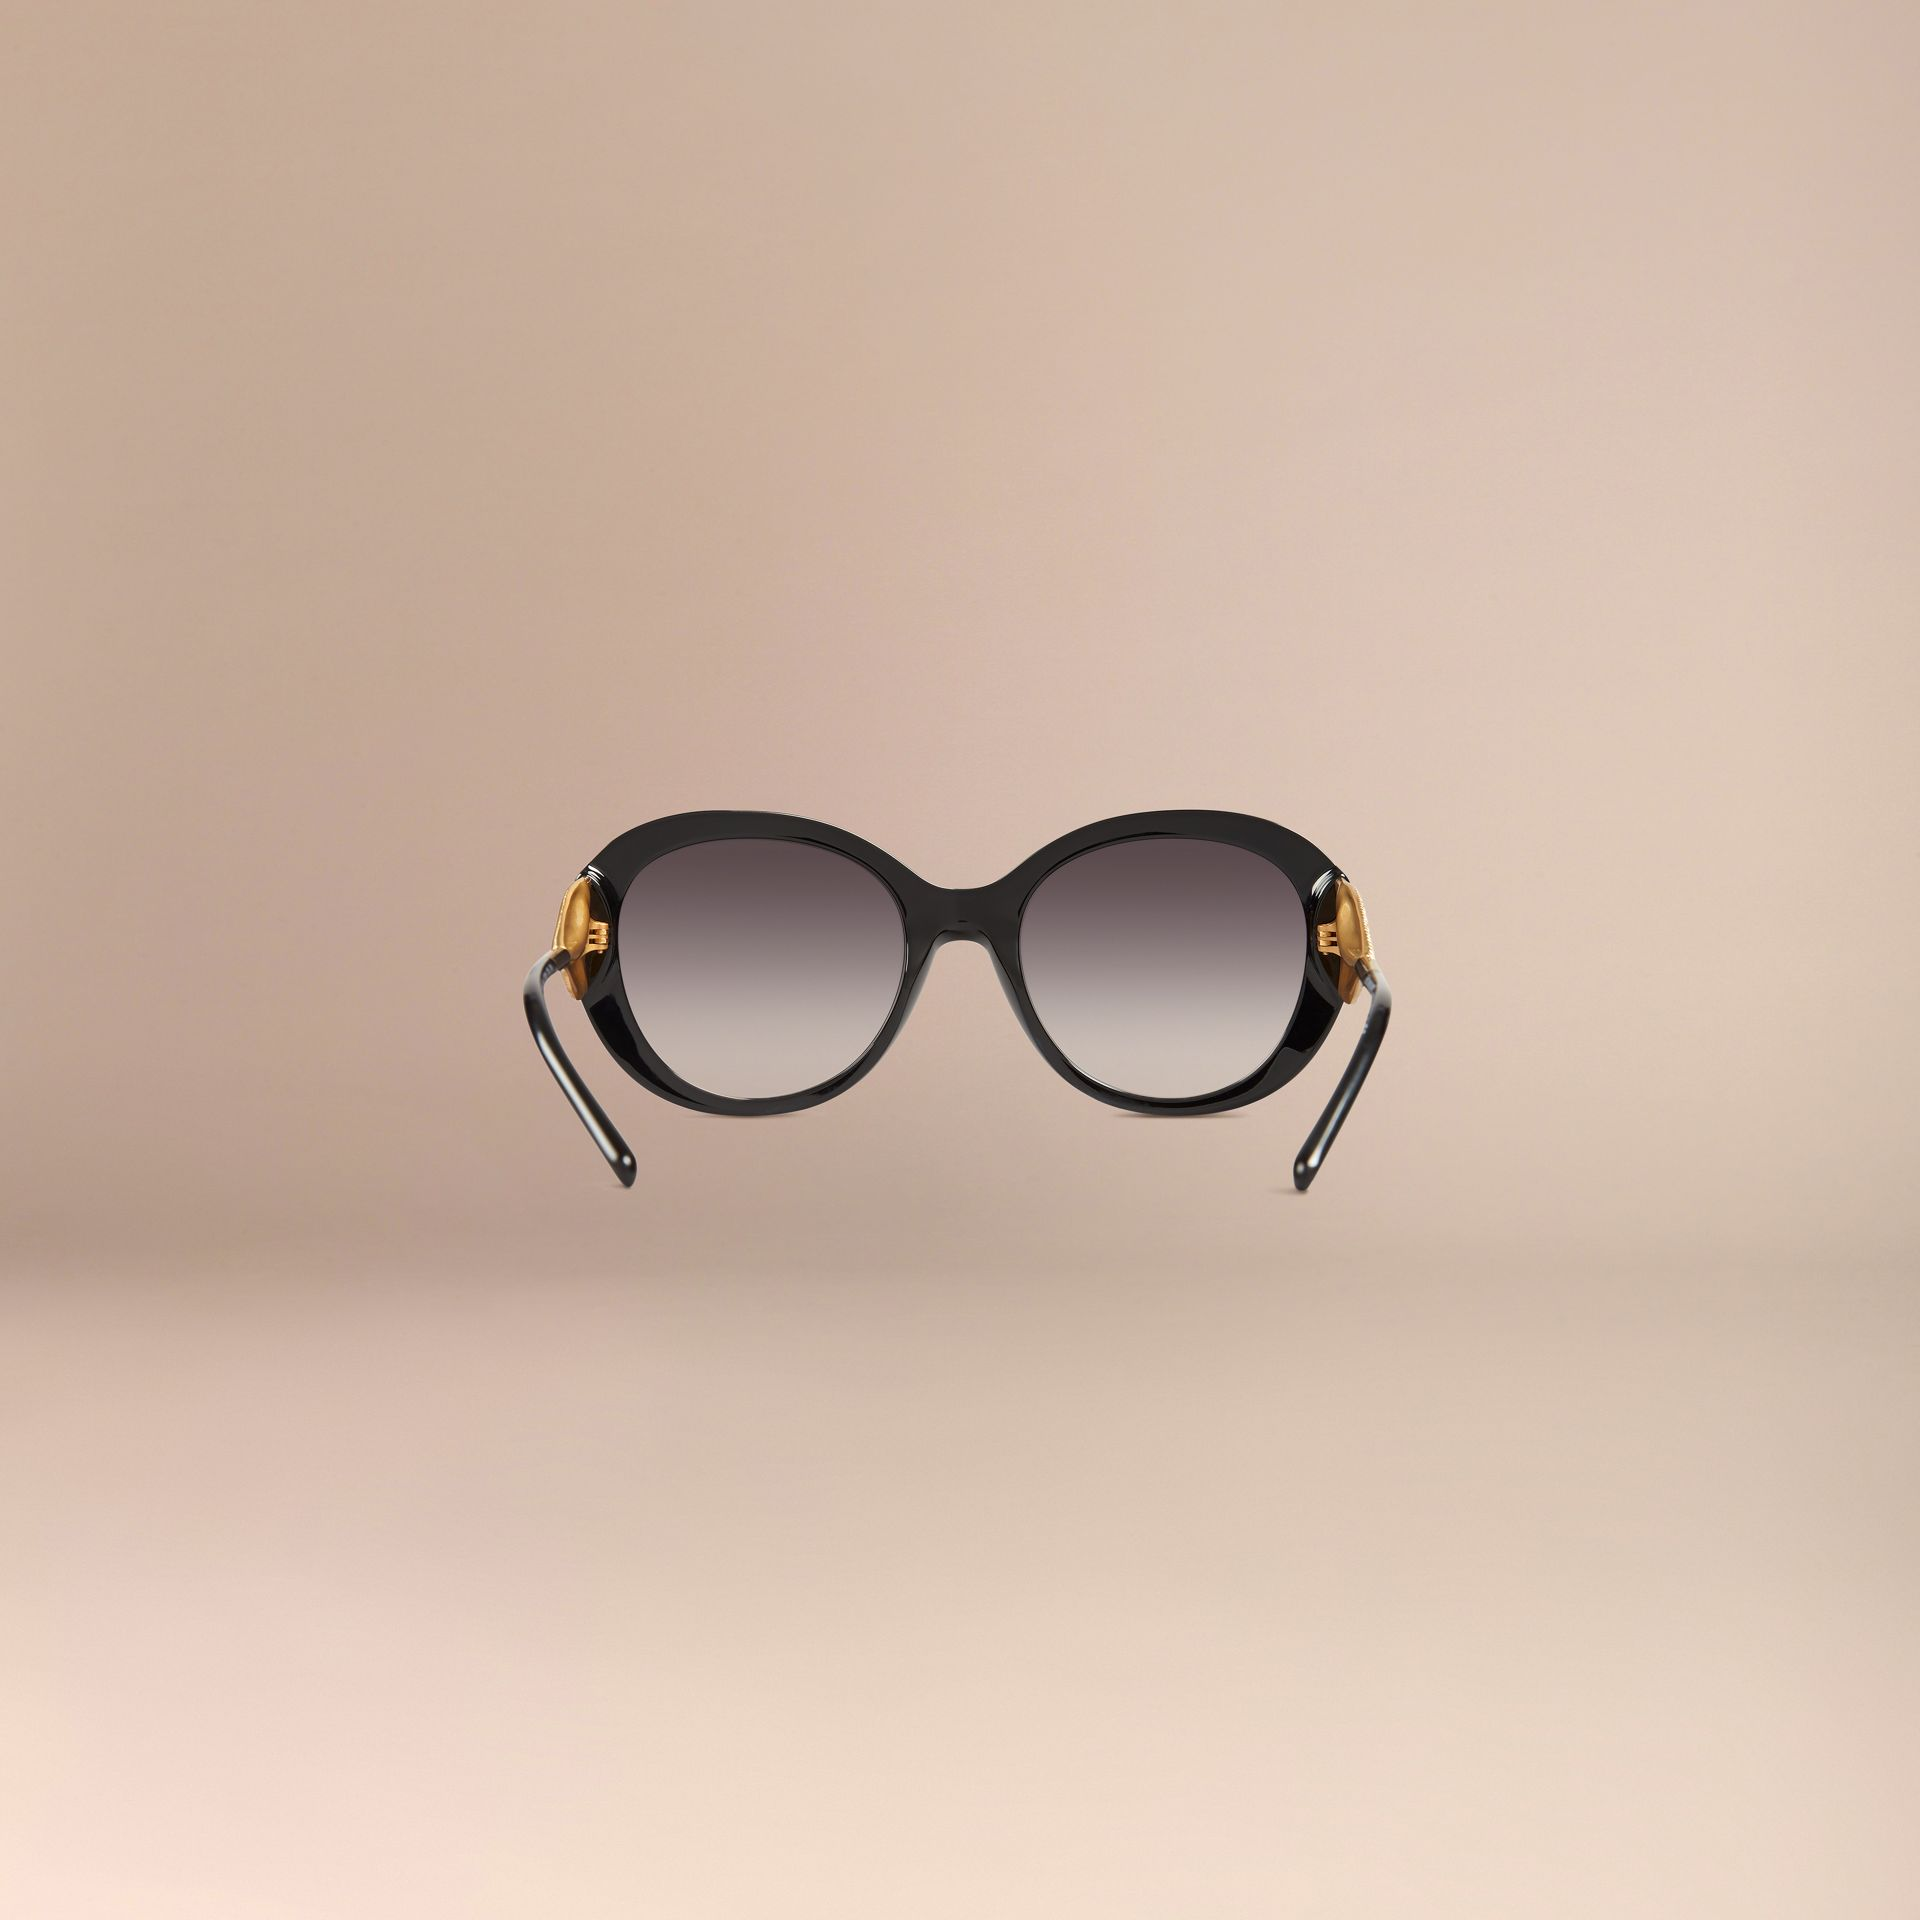 Oversize Round Frame Sunglasses in Black - Women | Burberry - gallery image 4